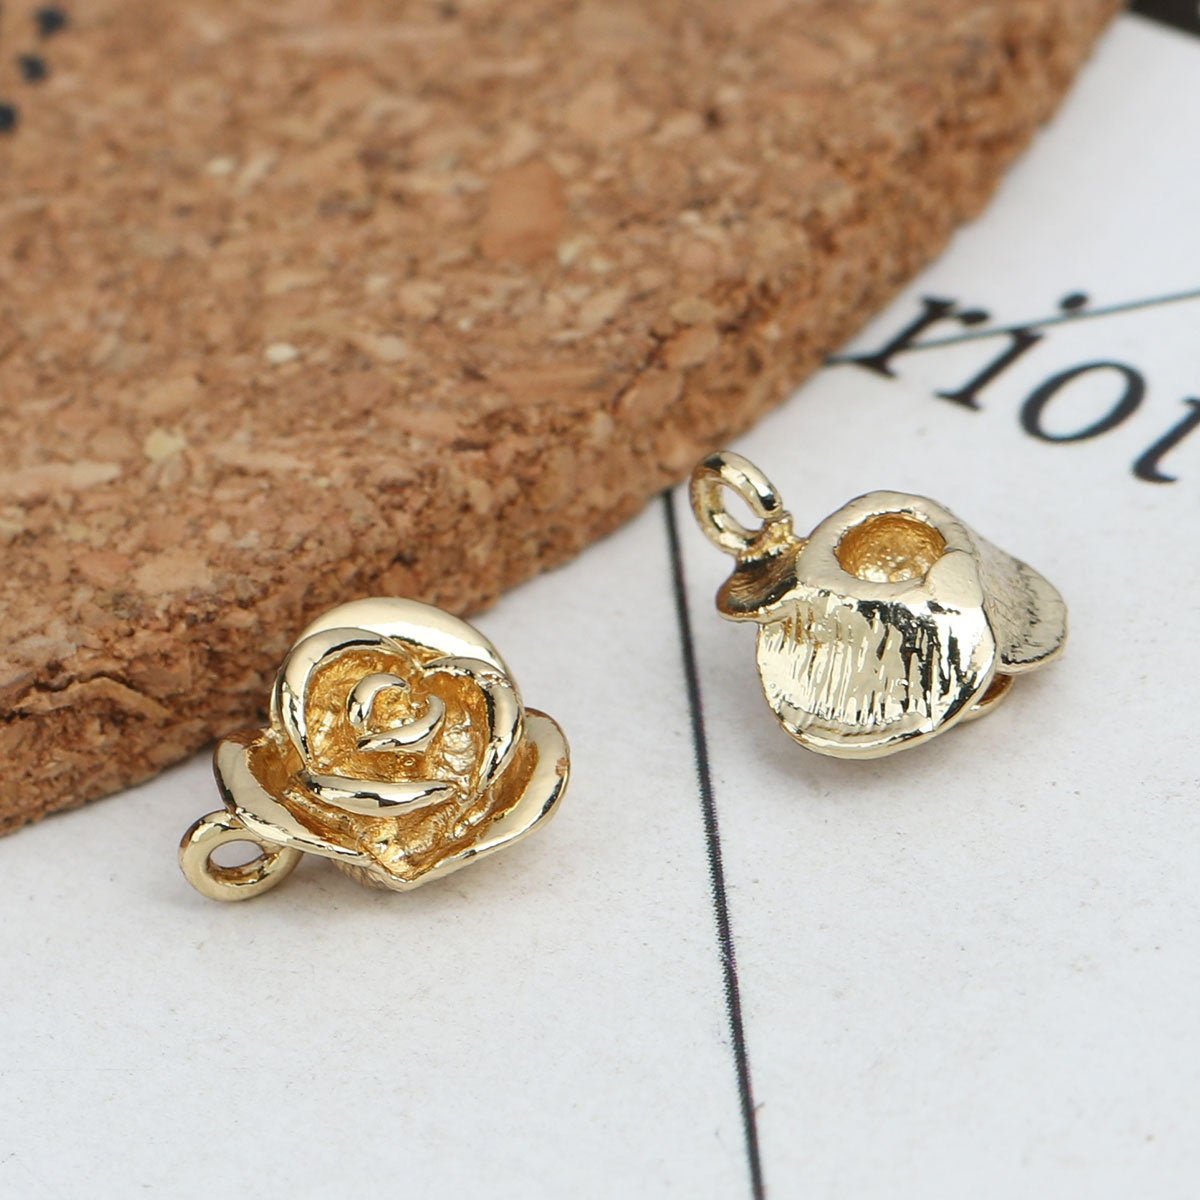 2 Gold Plated Rose Flower Pendants - 11mm x 9mm - Hole: 2mm